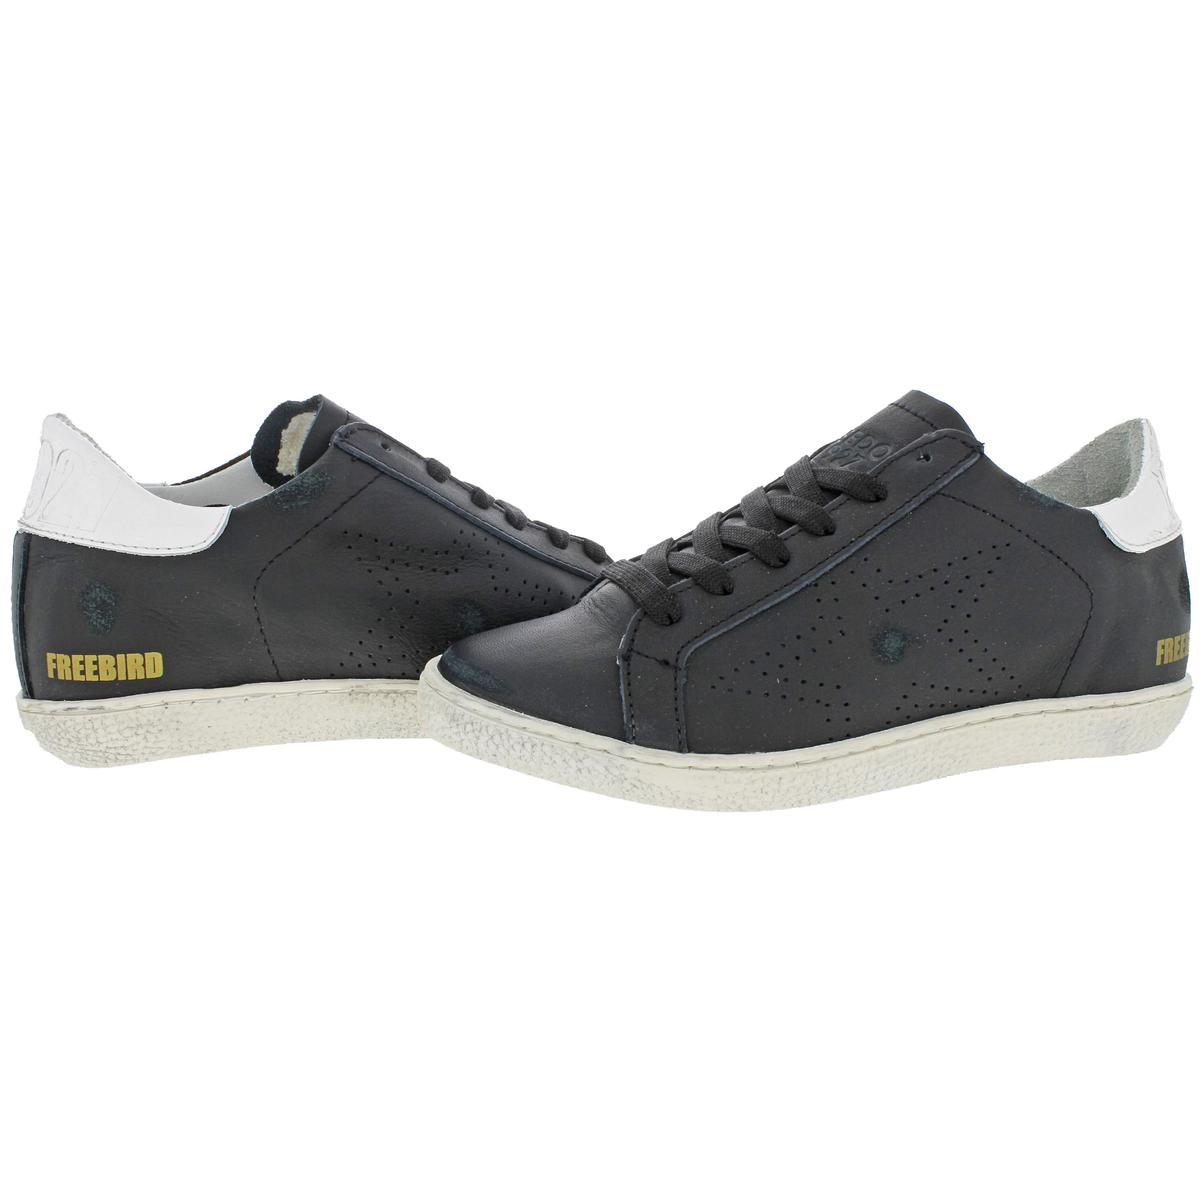 02c81a33e23 Freebird by Steve Madden Women s Leather Distressed Low Top Fashion ...